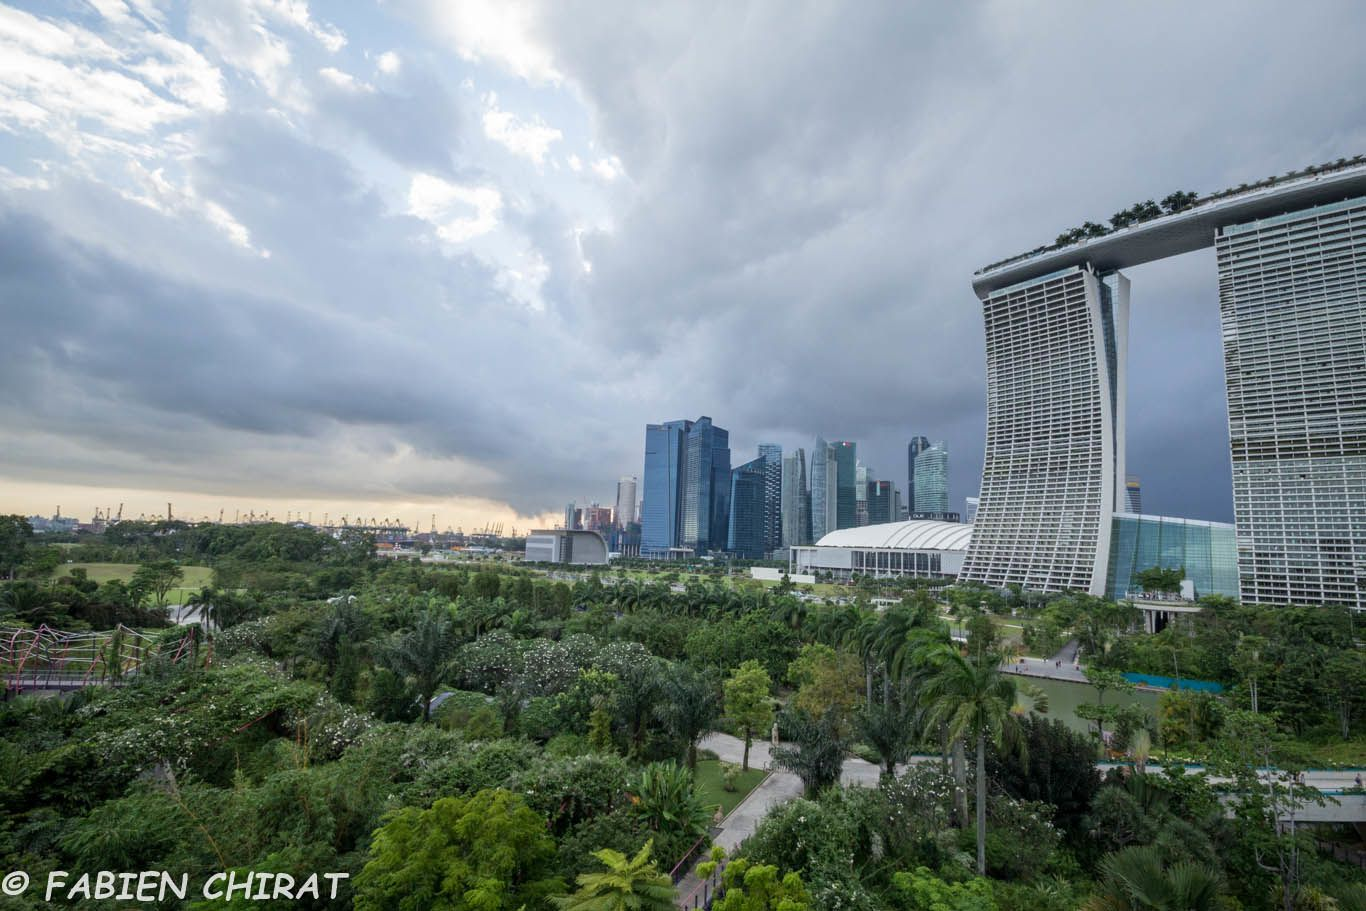 Marina bay sands au premier plan